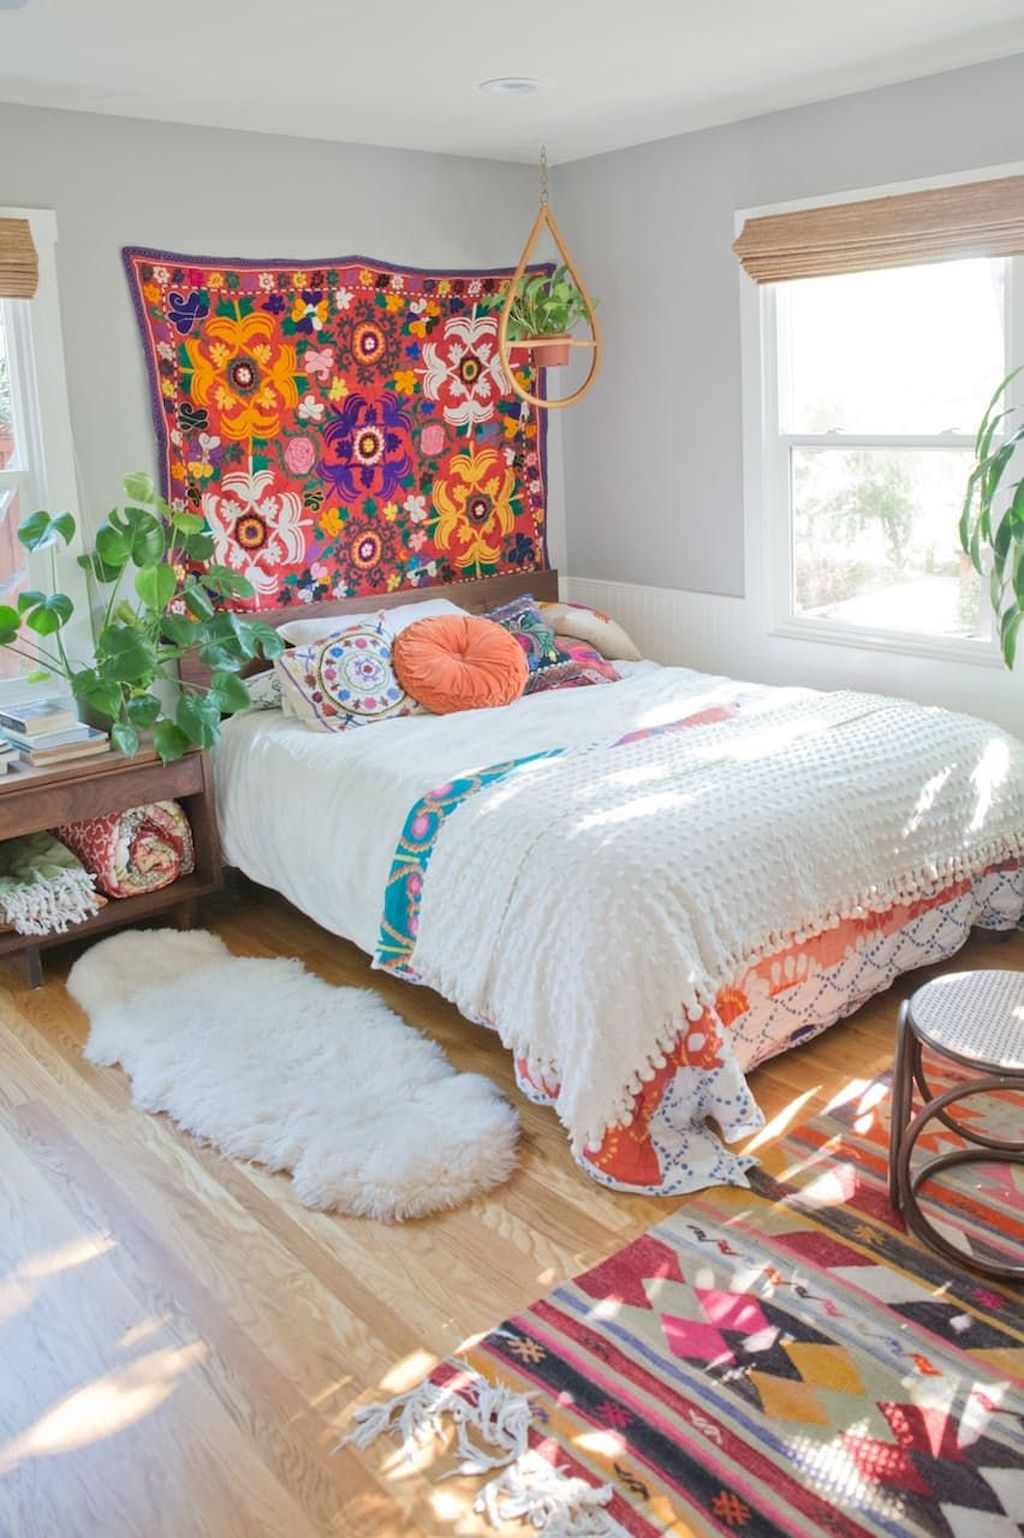 Cool 100 Colourfull Bedroom Ideas Https Homeofpondo Com 100 Colourfull Bedroom Ideas Bohemian Bedroom Design House Interior Home Decor